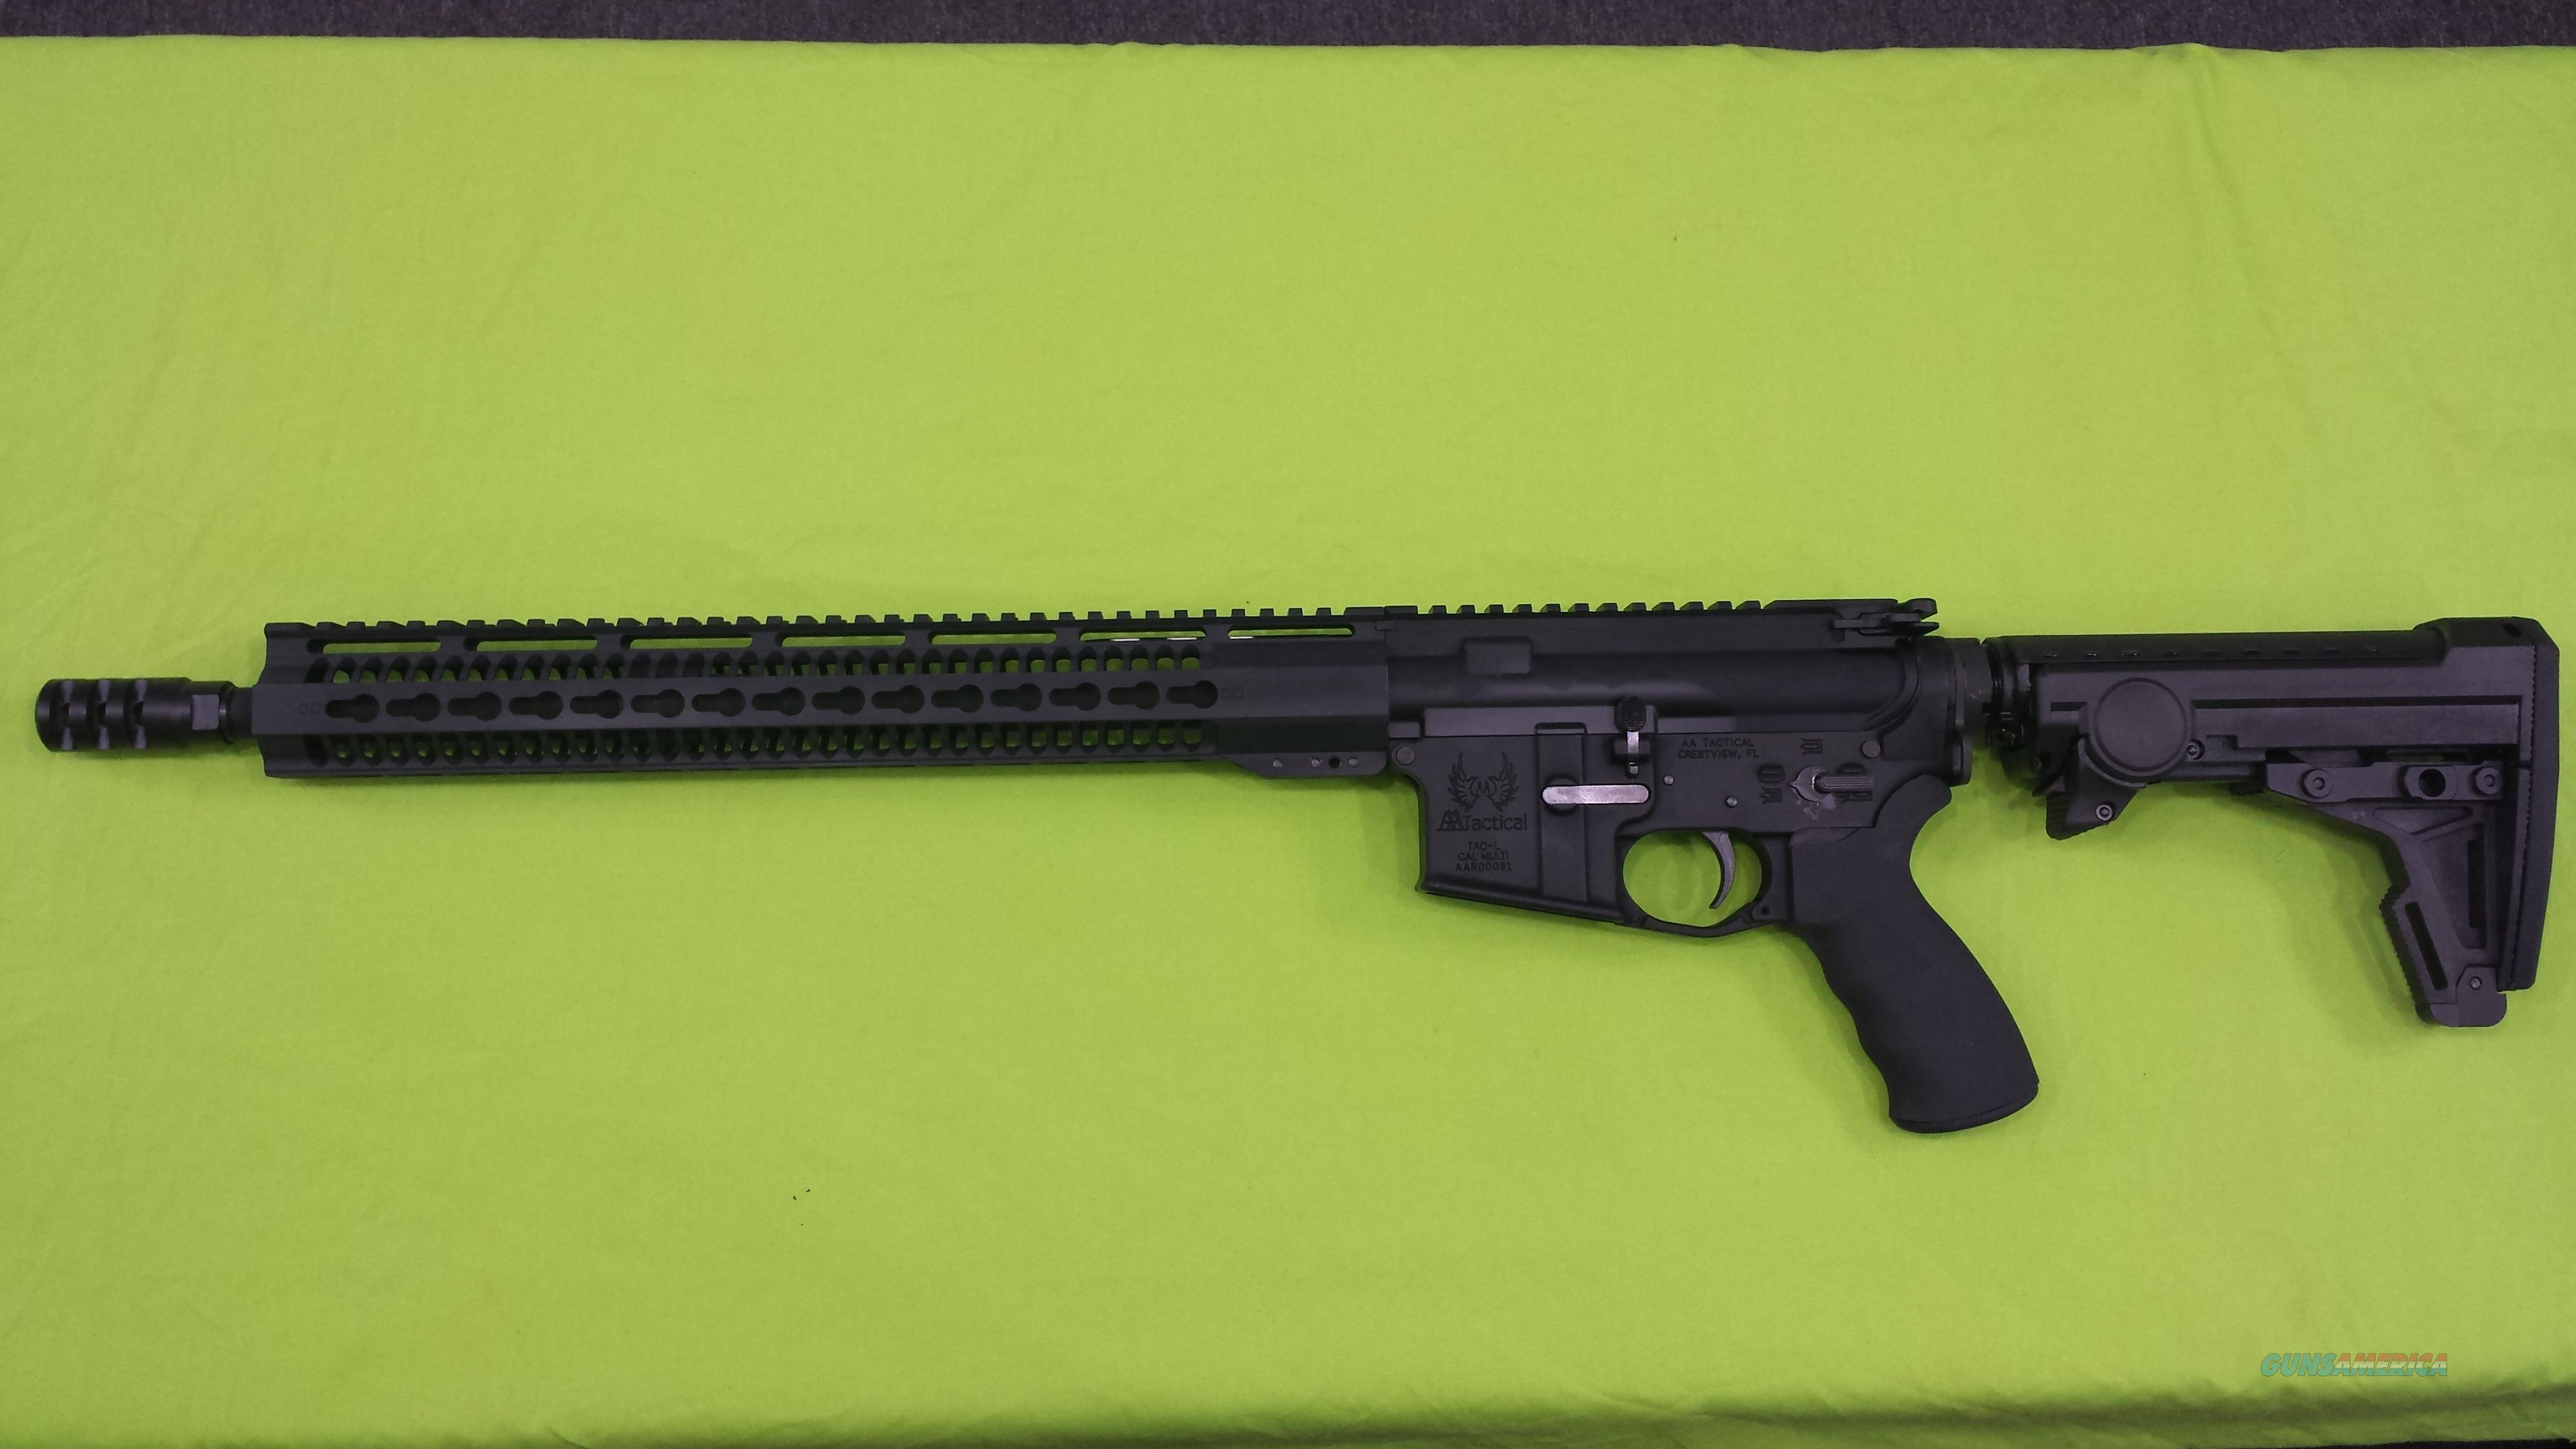 AA TACTICAL TAC-L 300 BLK 300 ACC ERGO 8 POS BLACK AR15   Guns > Rifles > AR-15 Rifles - Small Manufacturers > Complete Rifle